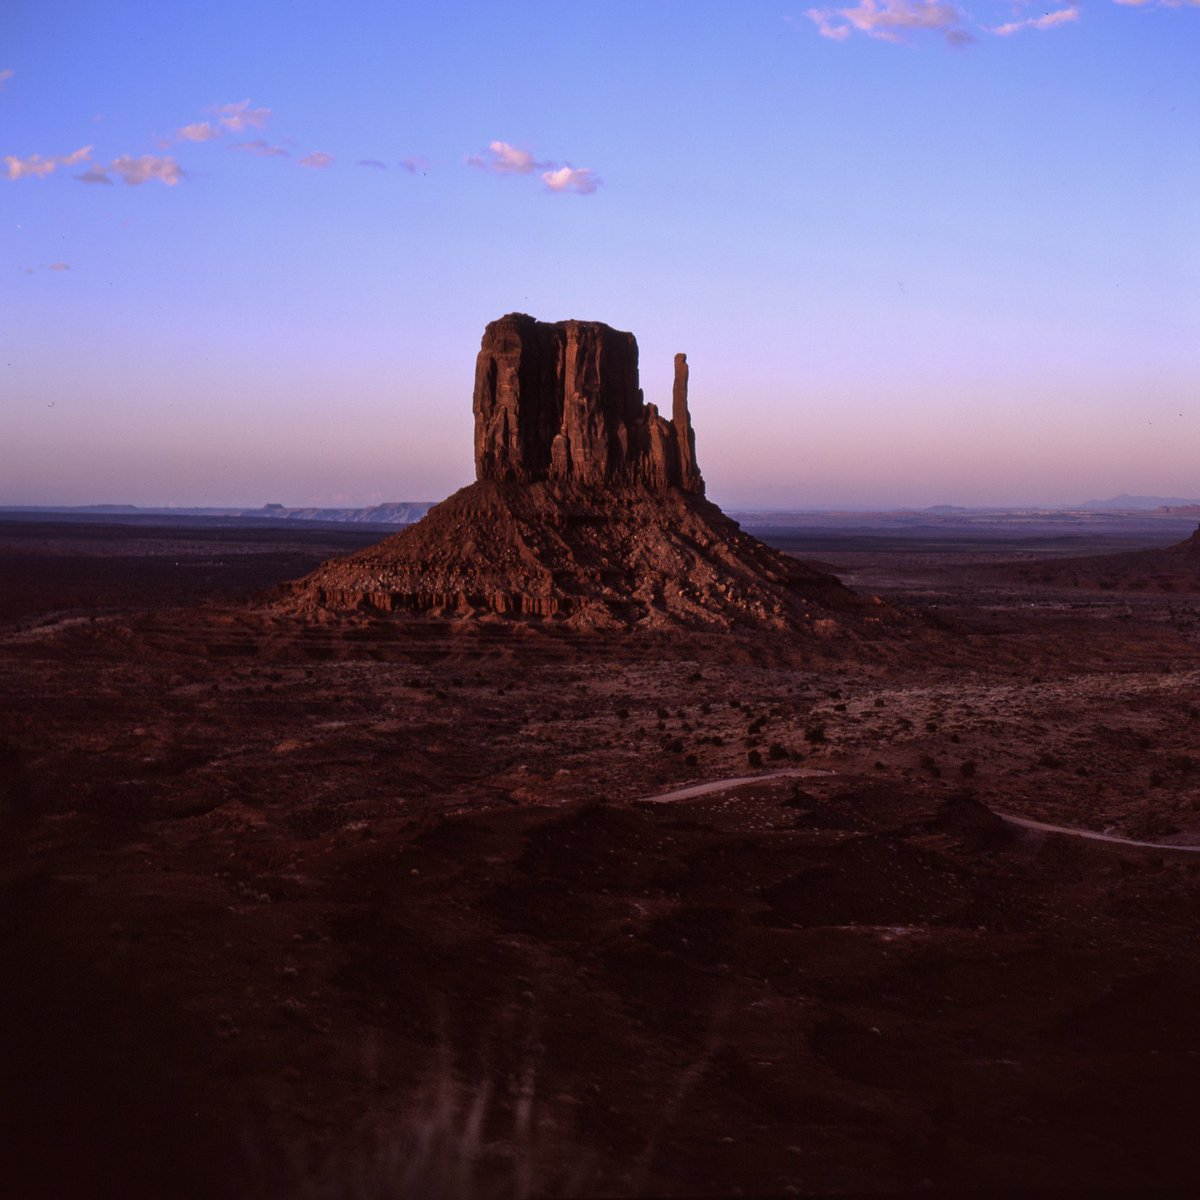 i took these on an old medium format film camera and they make me want to move to the desert and never come back